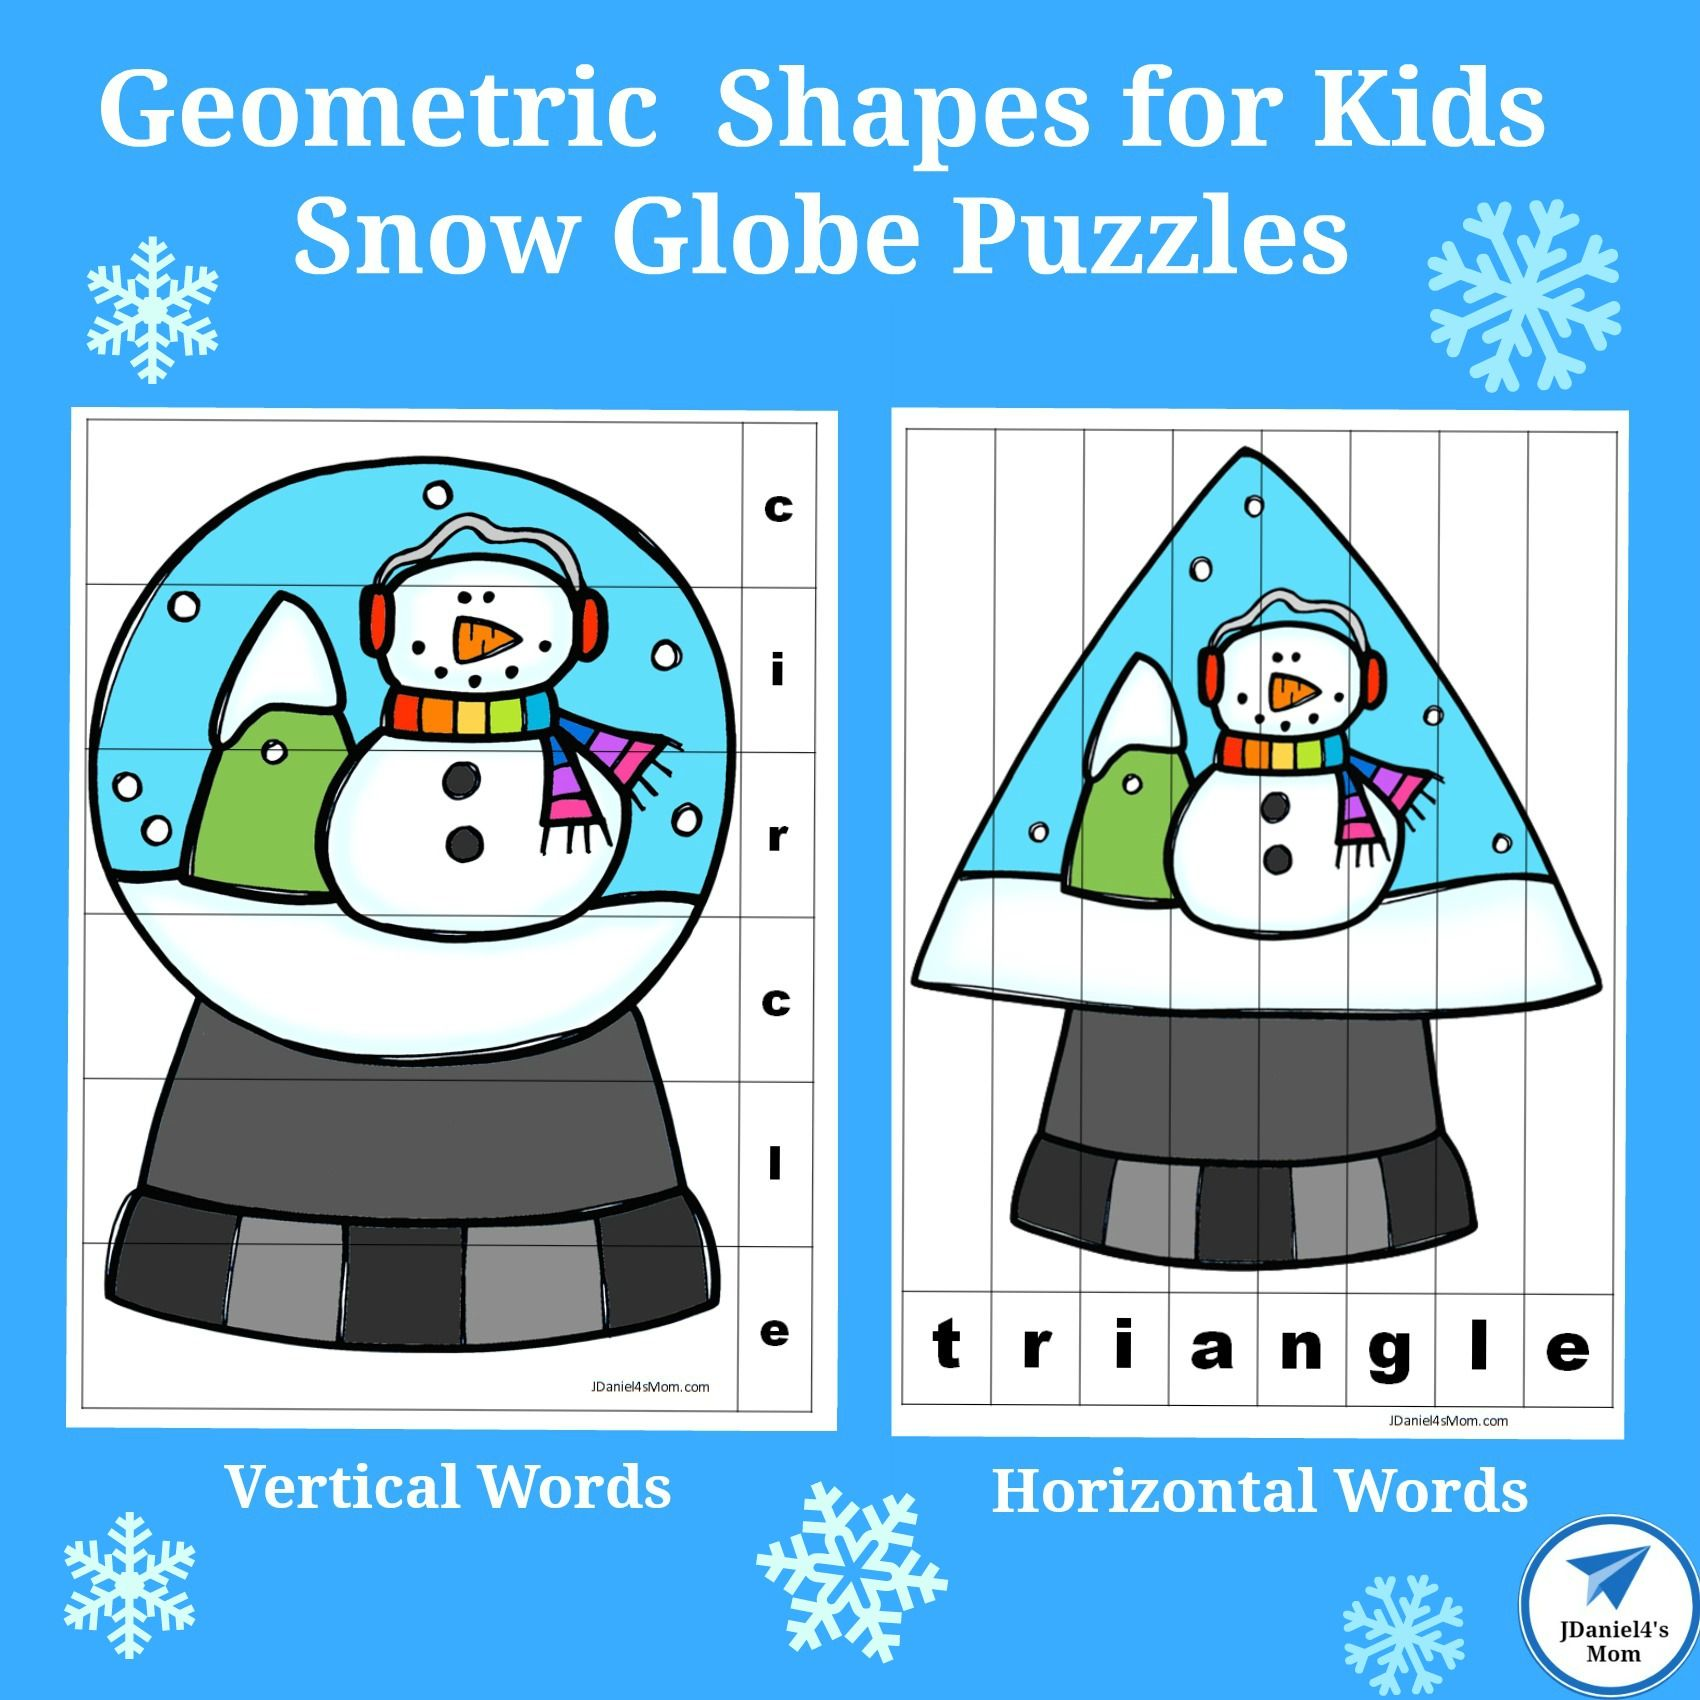 Geometric Shapes For Kids Snow Globe Puzzles